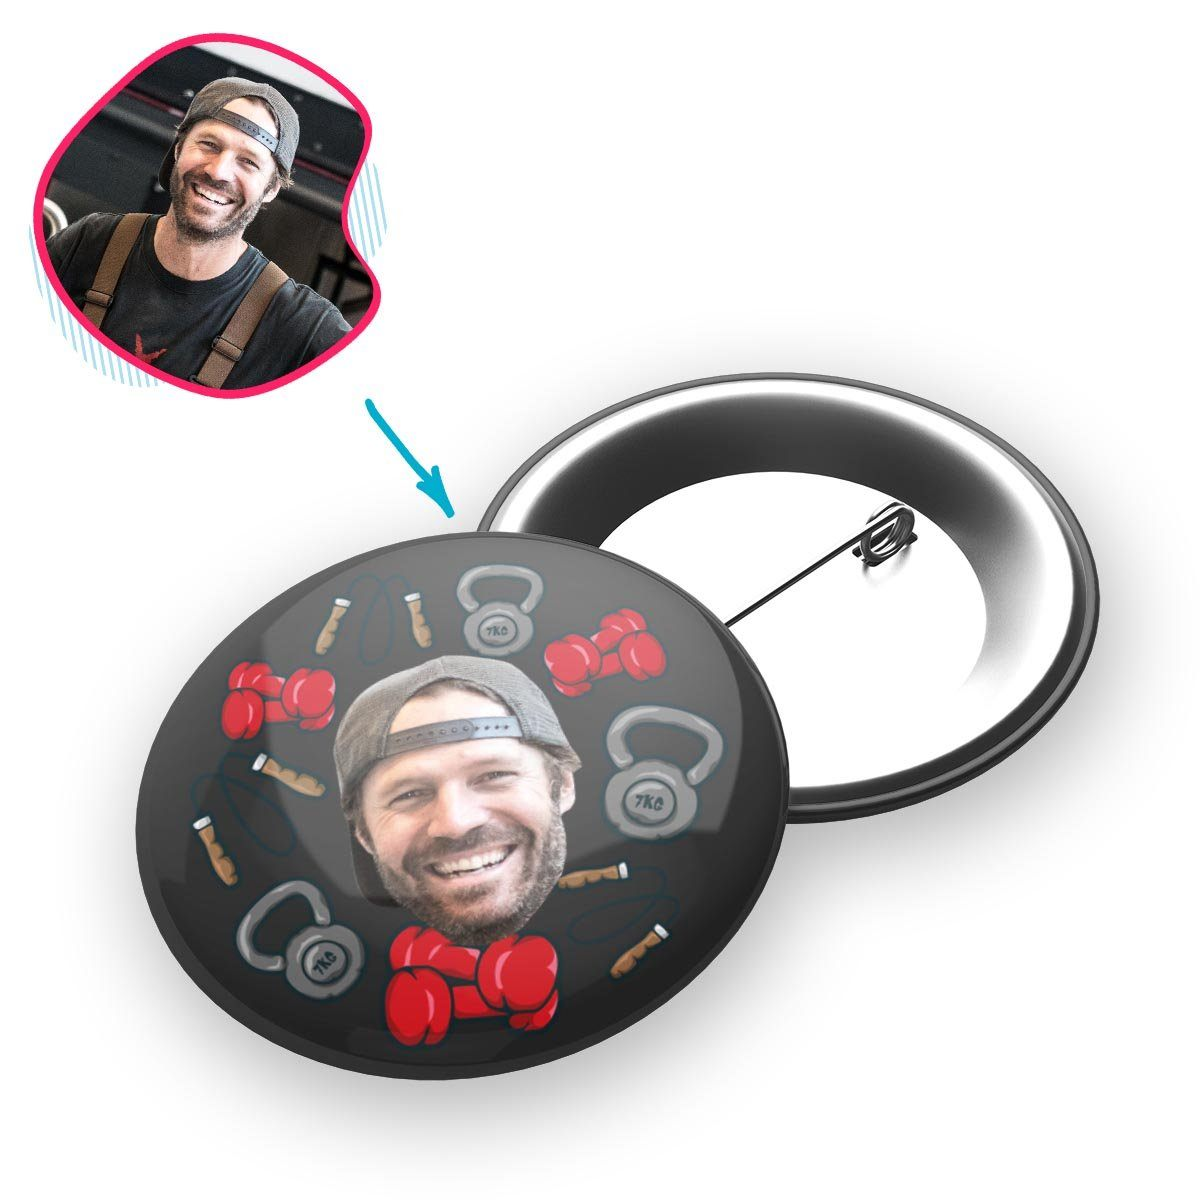 dark Gym & Fitness pin personalized with photo of face printed on it